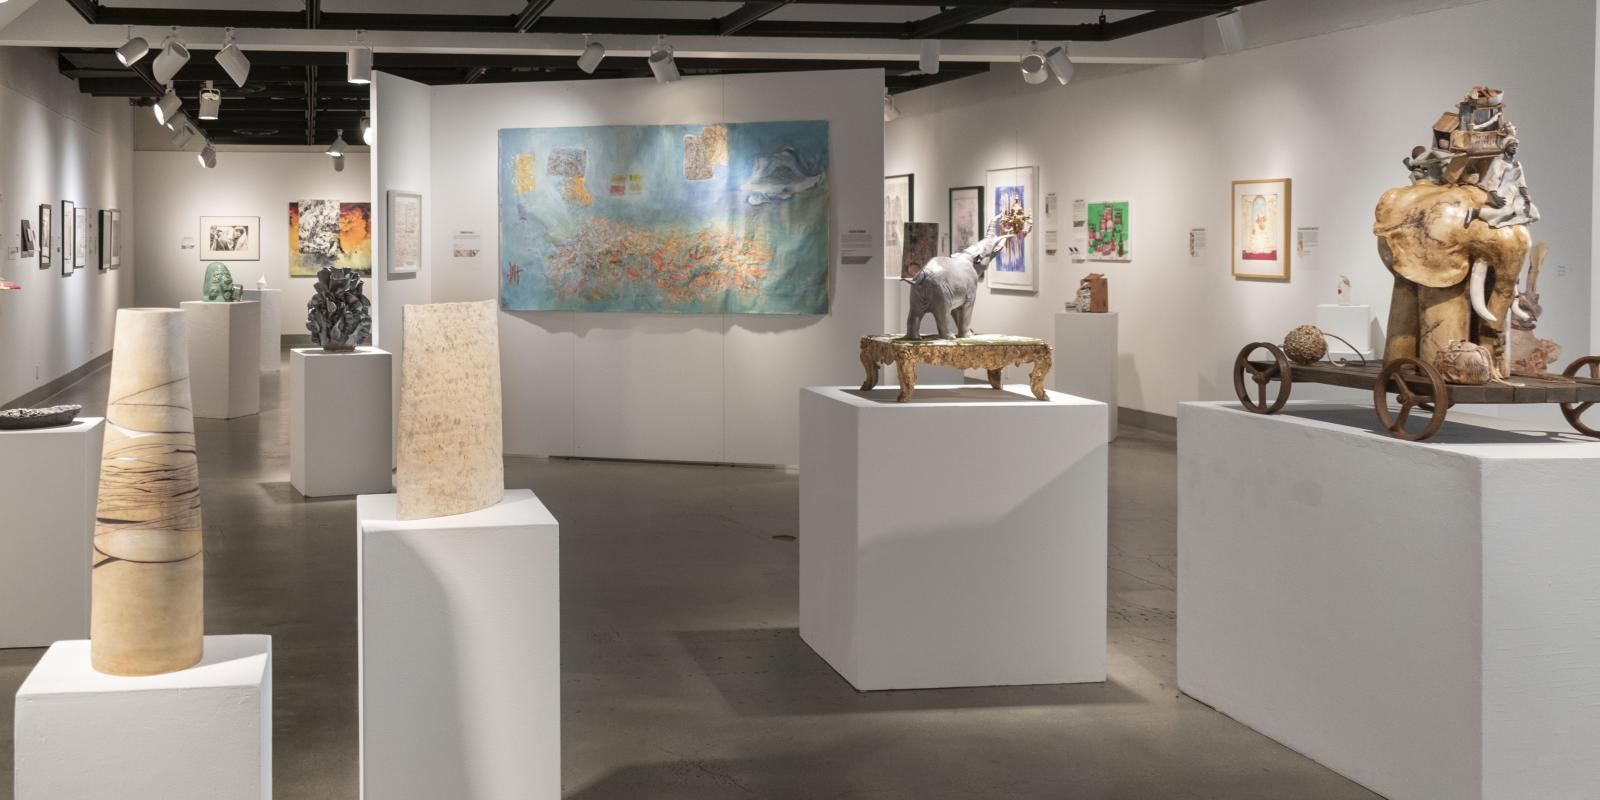 """Installation View, Back of gallery, Exhibition: """"Ink & Clay 44"""", Aug.22, 2019 to Nov. 21, 2019, Curator: Michele Cairella Fillmore, W. Keith & Janet Kellogg Art Gallery, Cal Poly Pomona."""